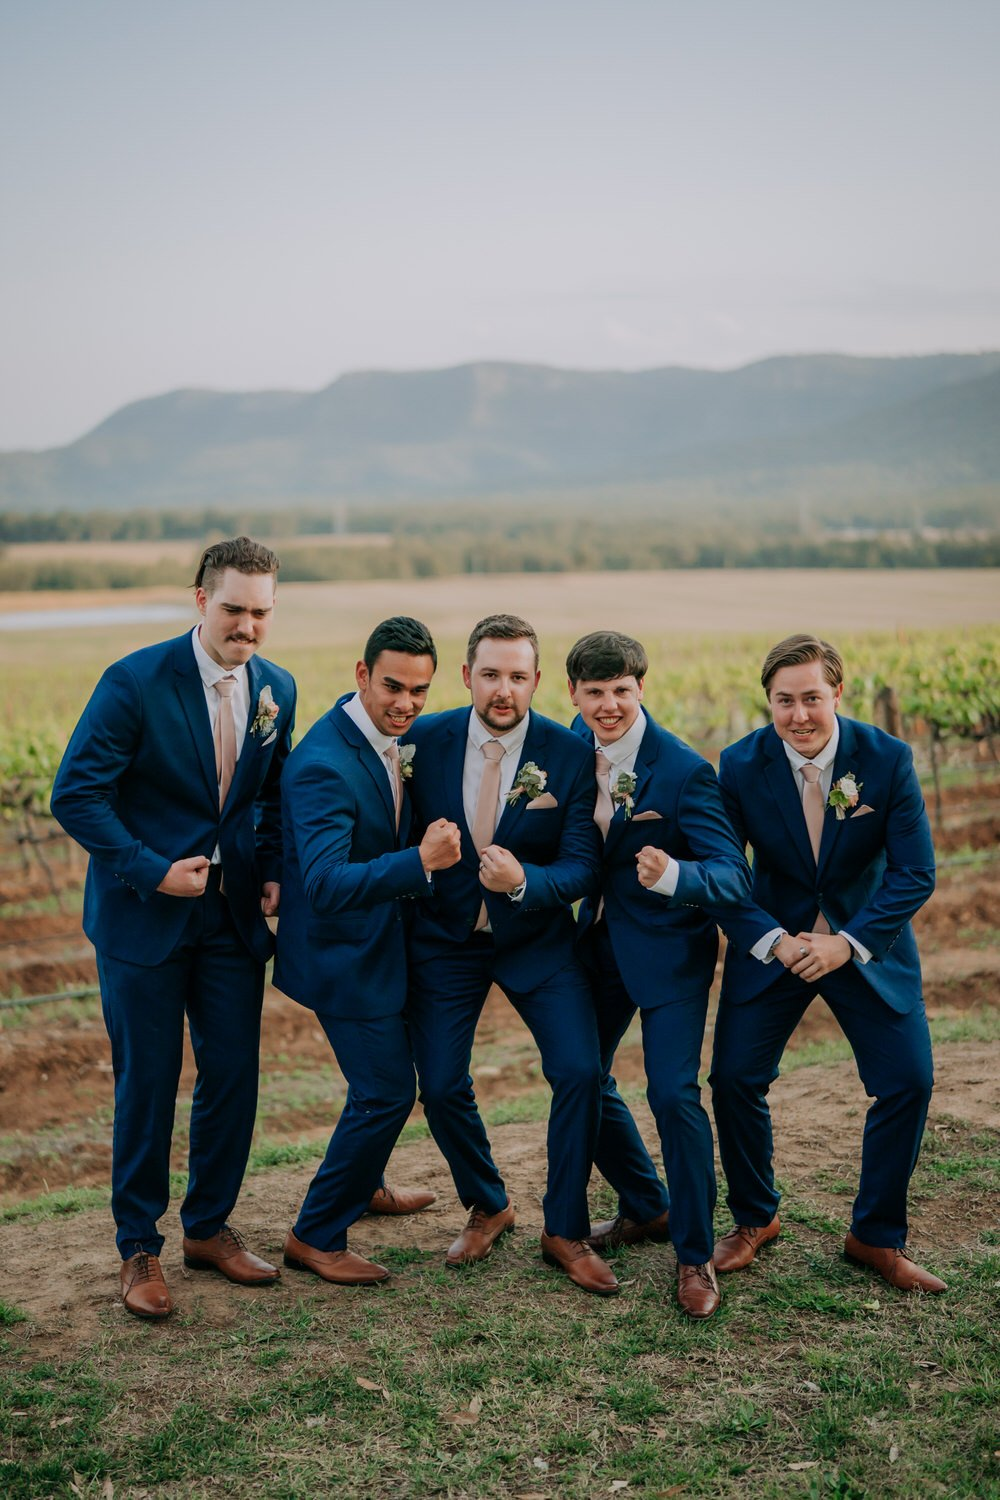 ava-me-photography-chantel-andreas-enzo-hunter-valley-ironbark-hill-vineyard-wedding-623-1